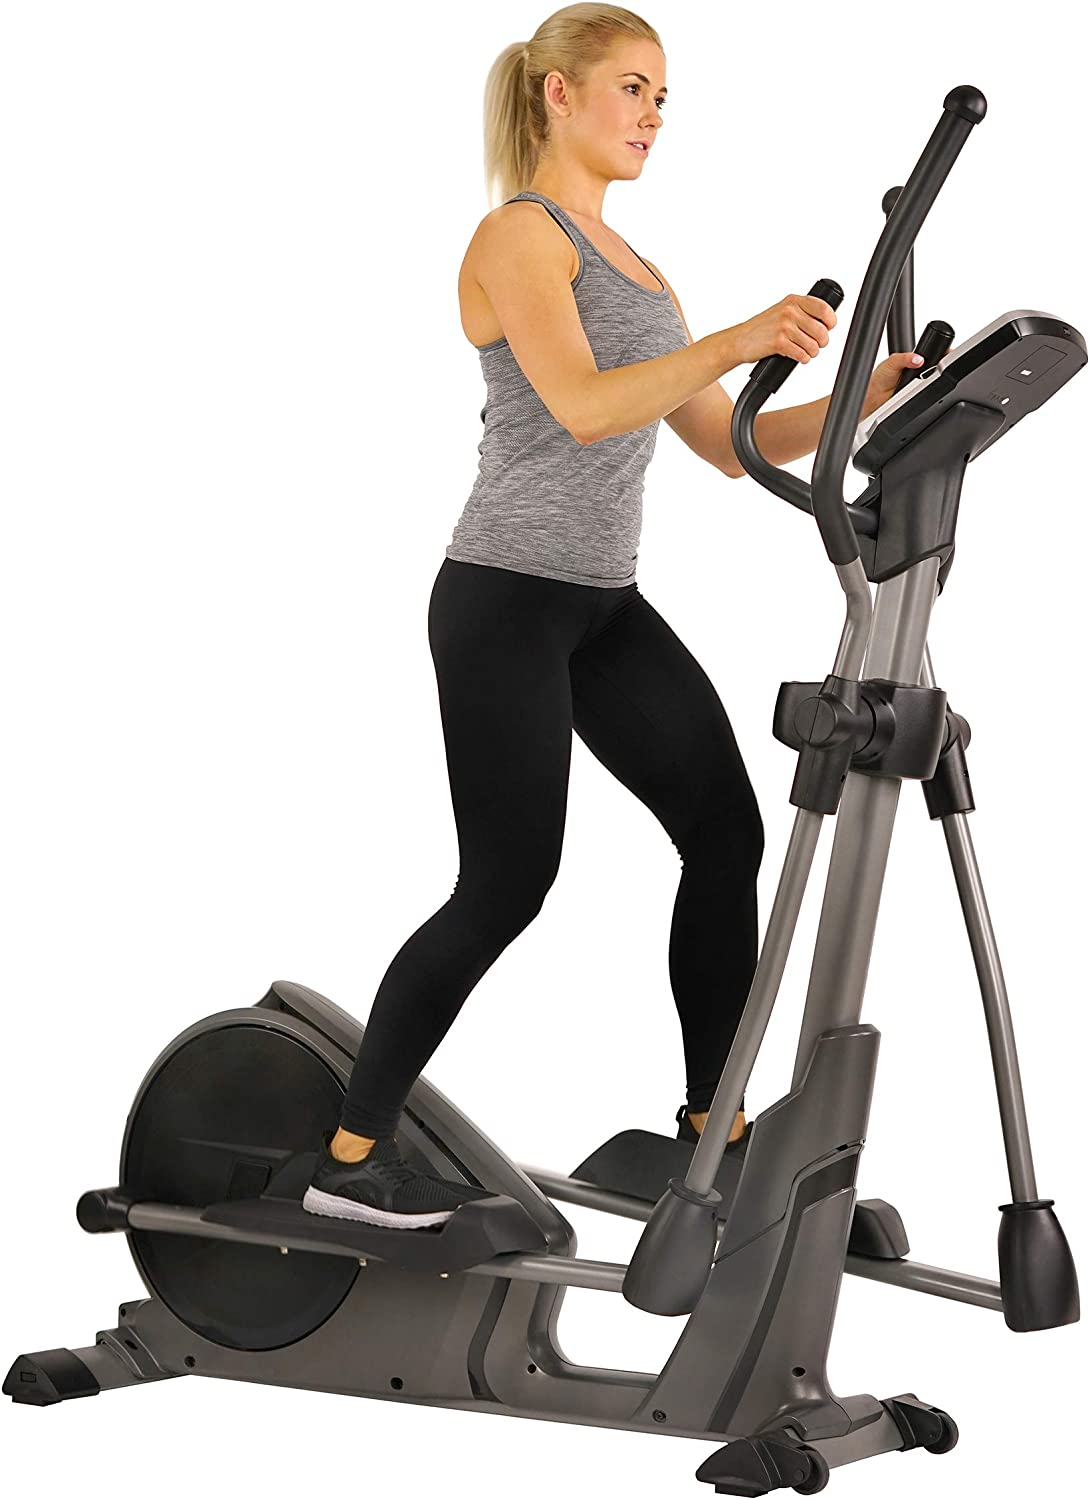 Sunny Health Fitness Magnetic Elliptical Trainer Machine w Tablet Holder, Programmable Monitor and Heart Rate Monitoring, 330 LB Max Weight – SF-E3912